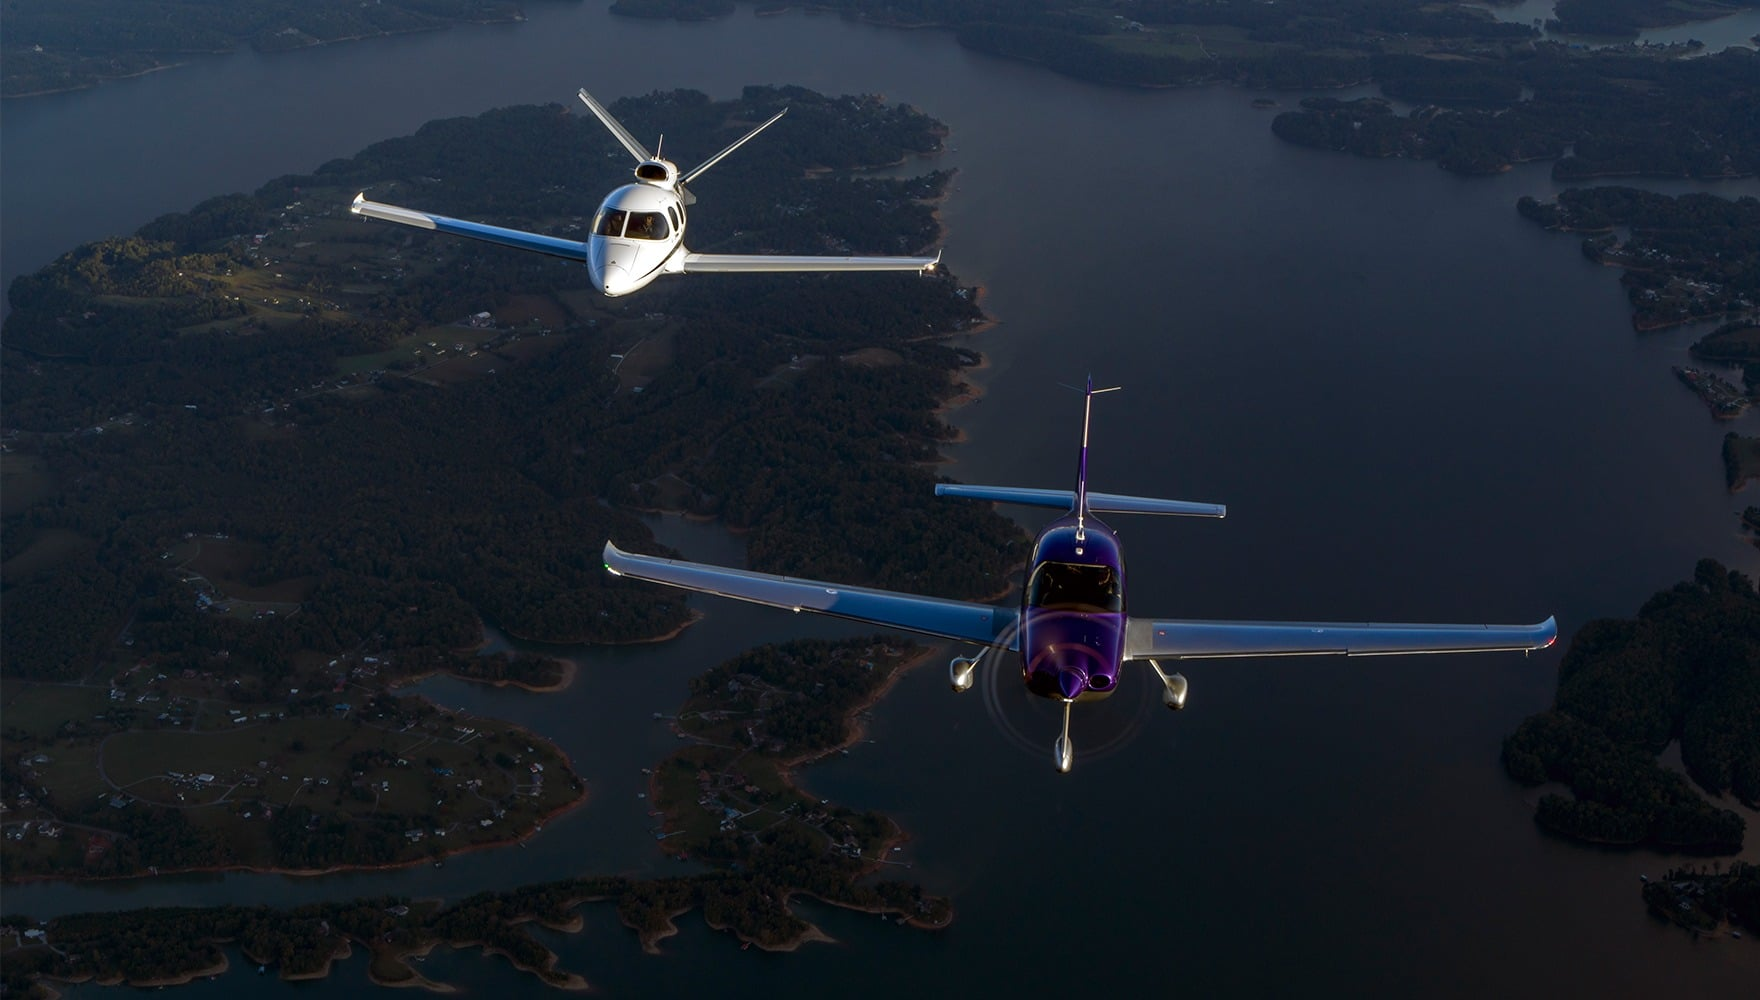 Cirrus Aircraft Expands Services Offerings and adds new Cirrus IQ features to Enhance the Ownership Experience